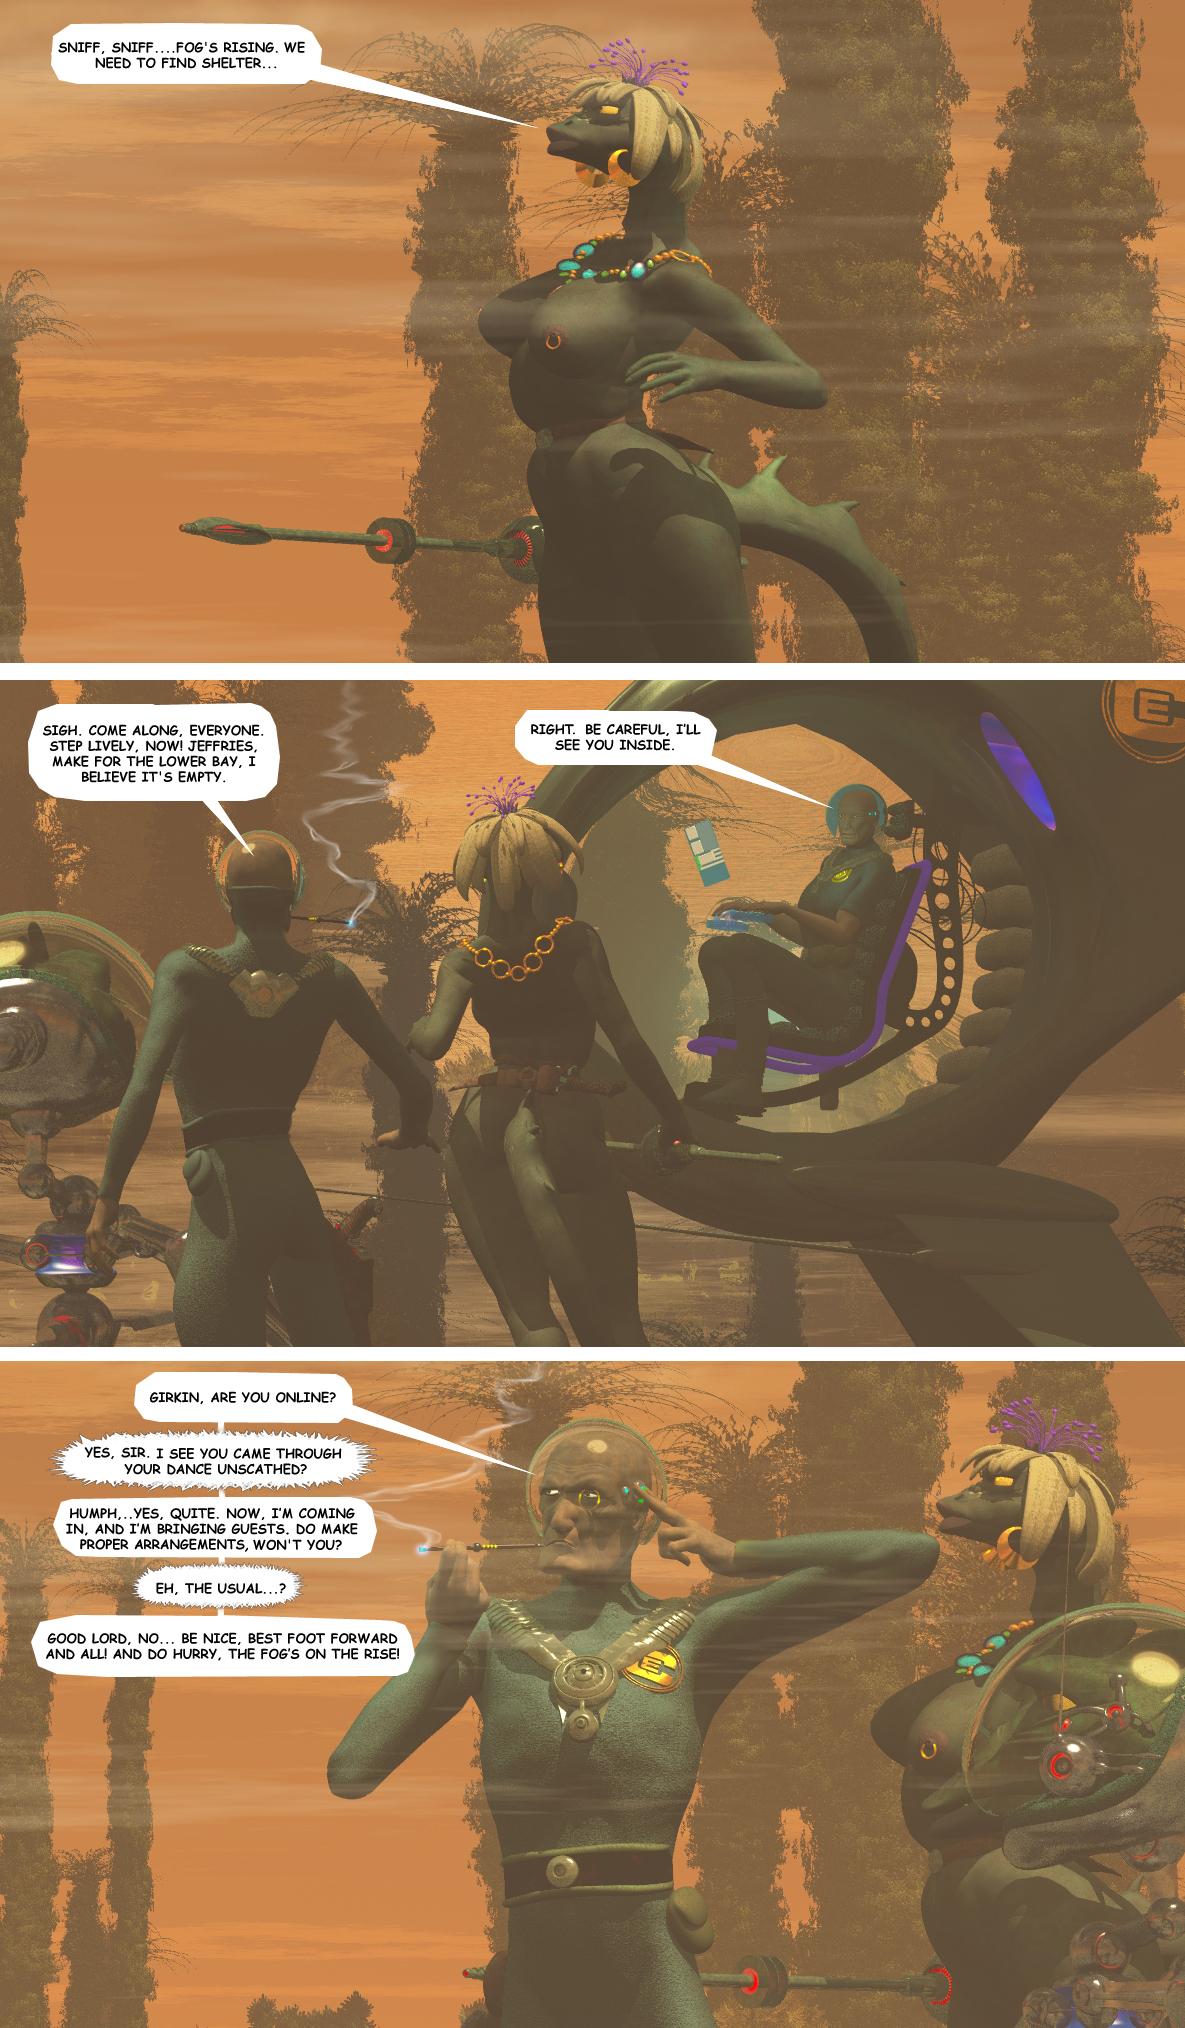 STORM OVER WHOOMERA PAGE 7